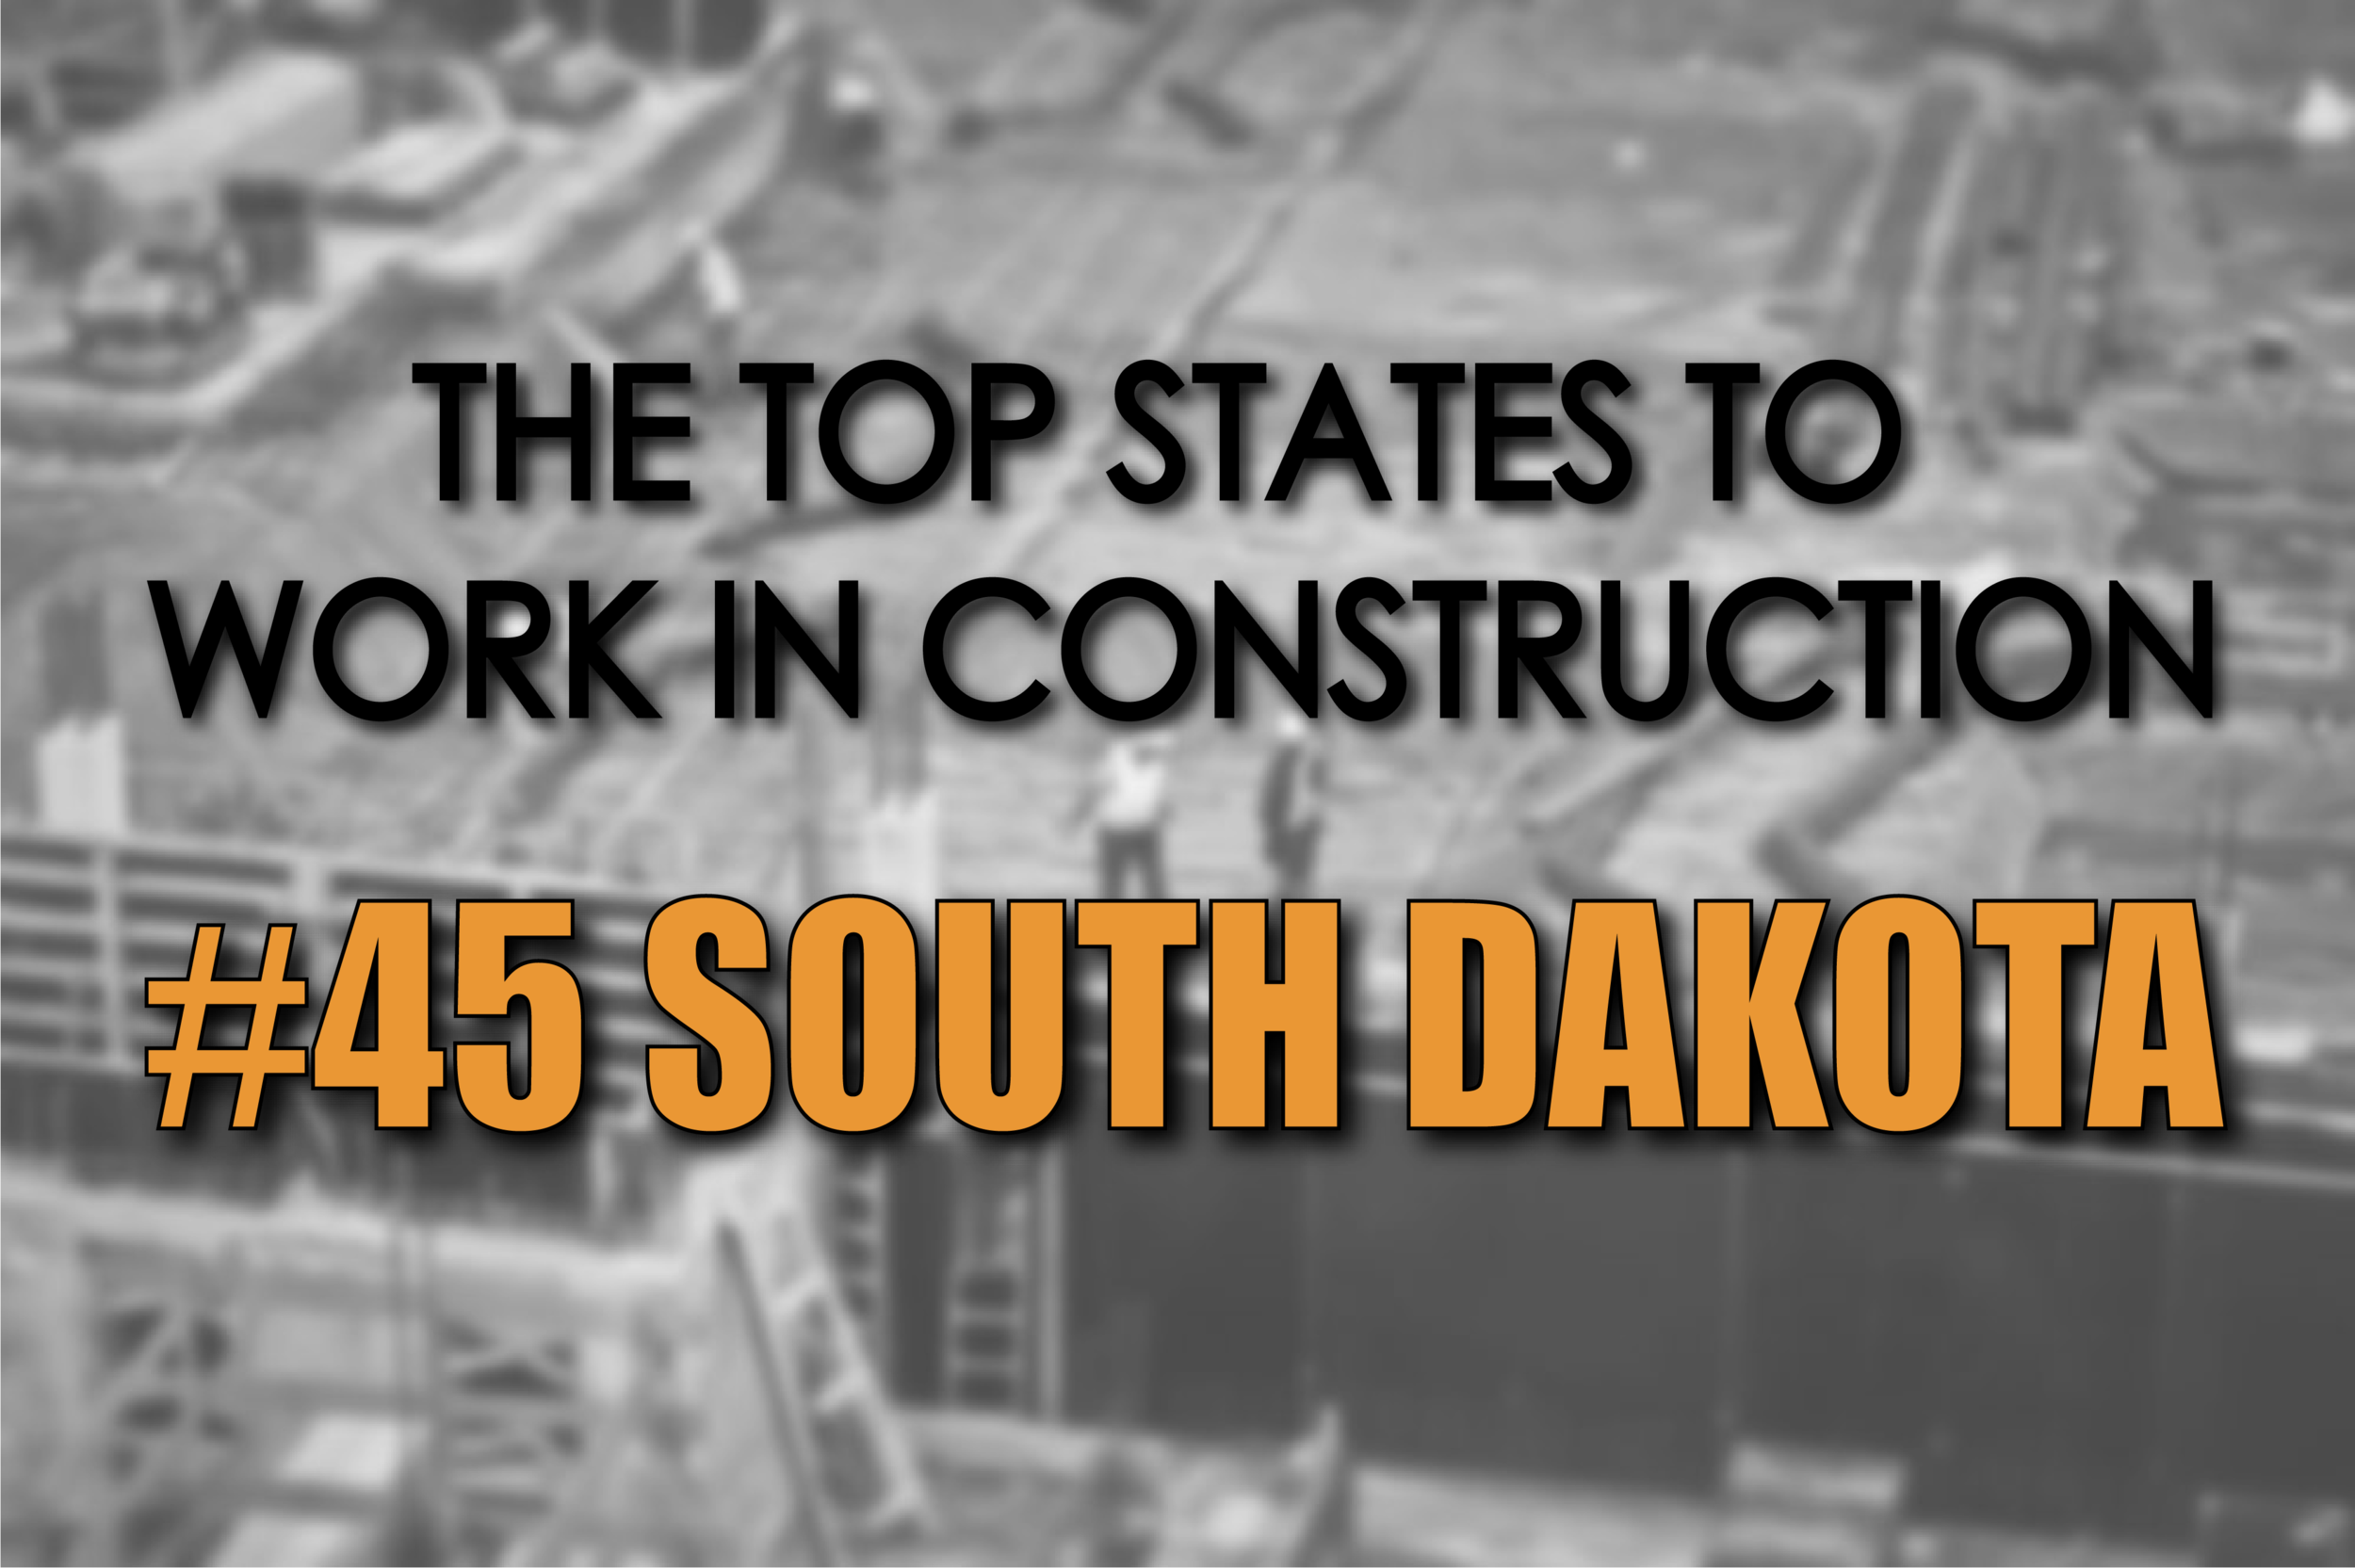 South Dakota best states to work in construction